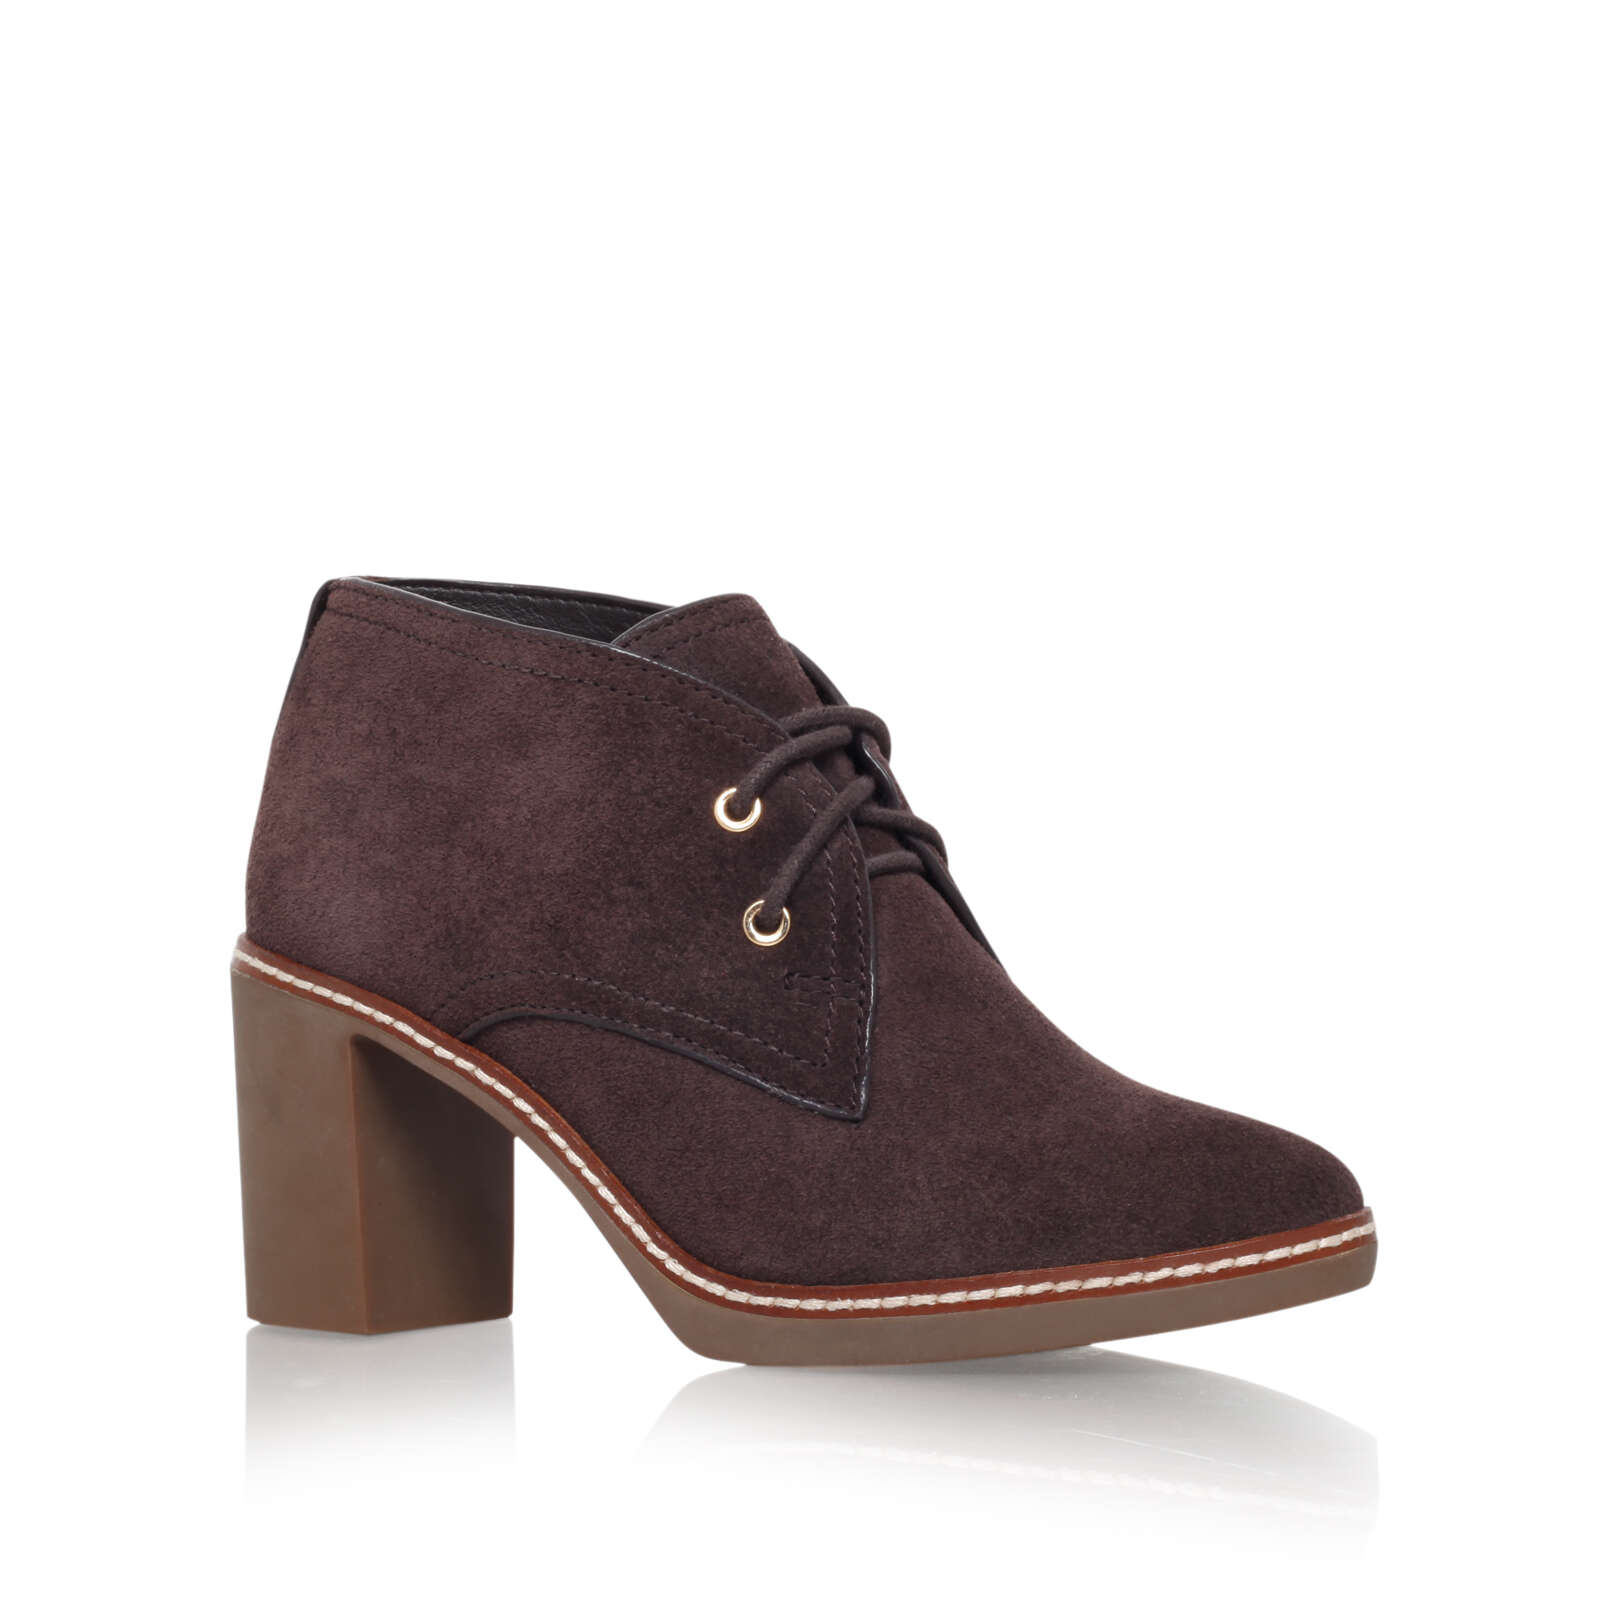 HILARY 75 BOOTIE